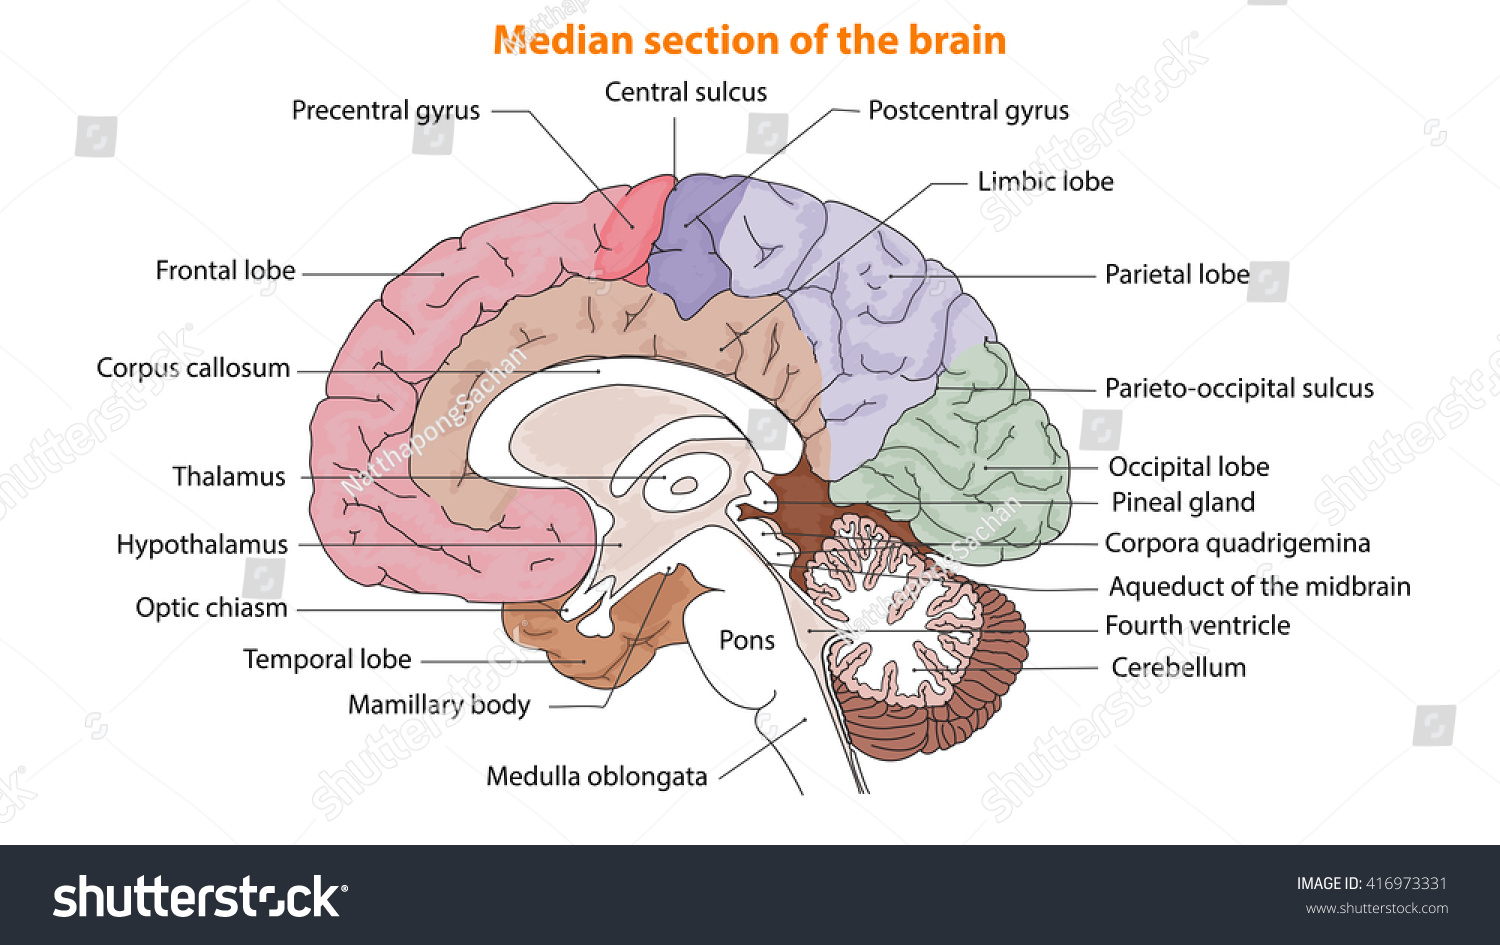 Human Brain Brain Median Section Brain Stock Vector HD (Royalty Free ...